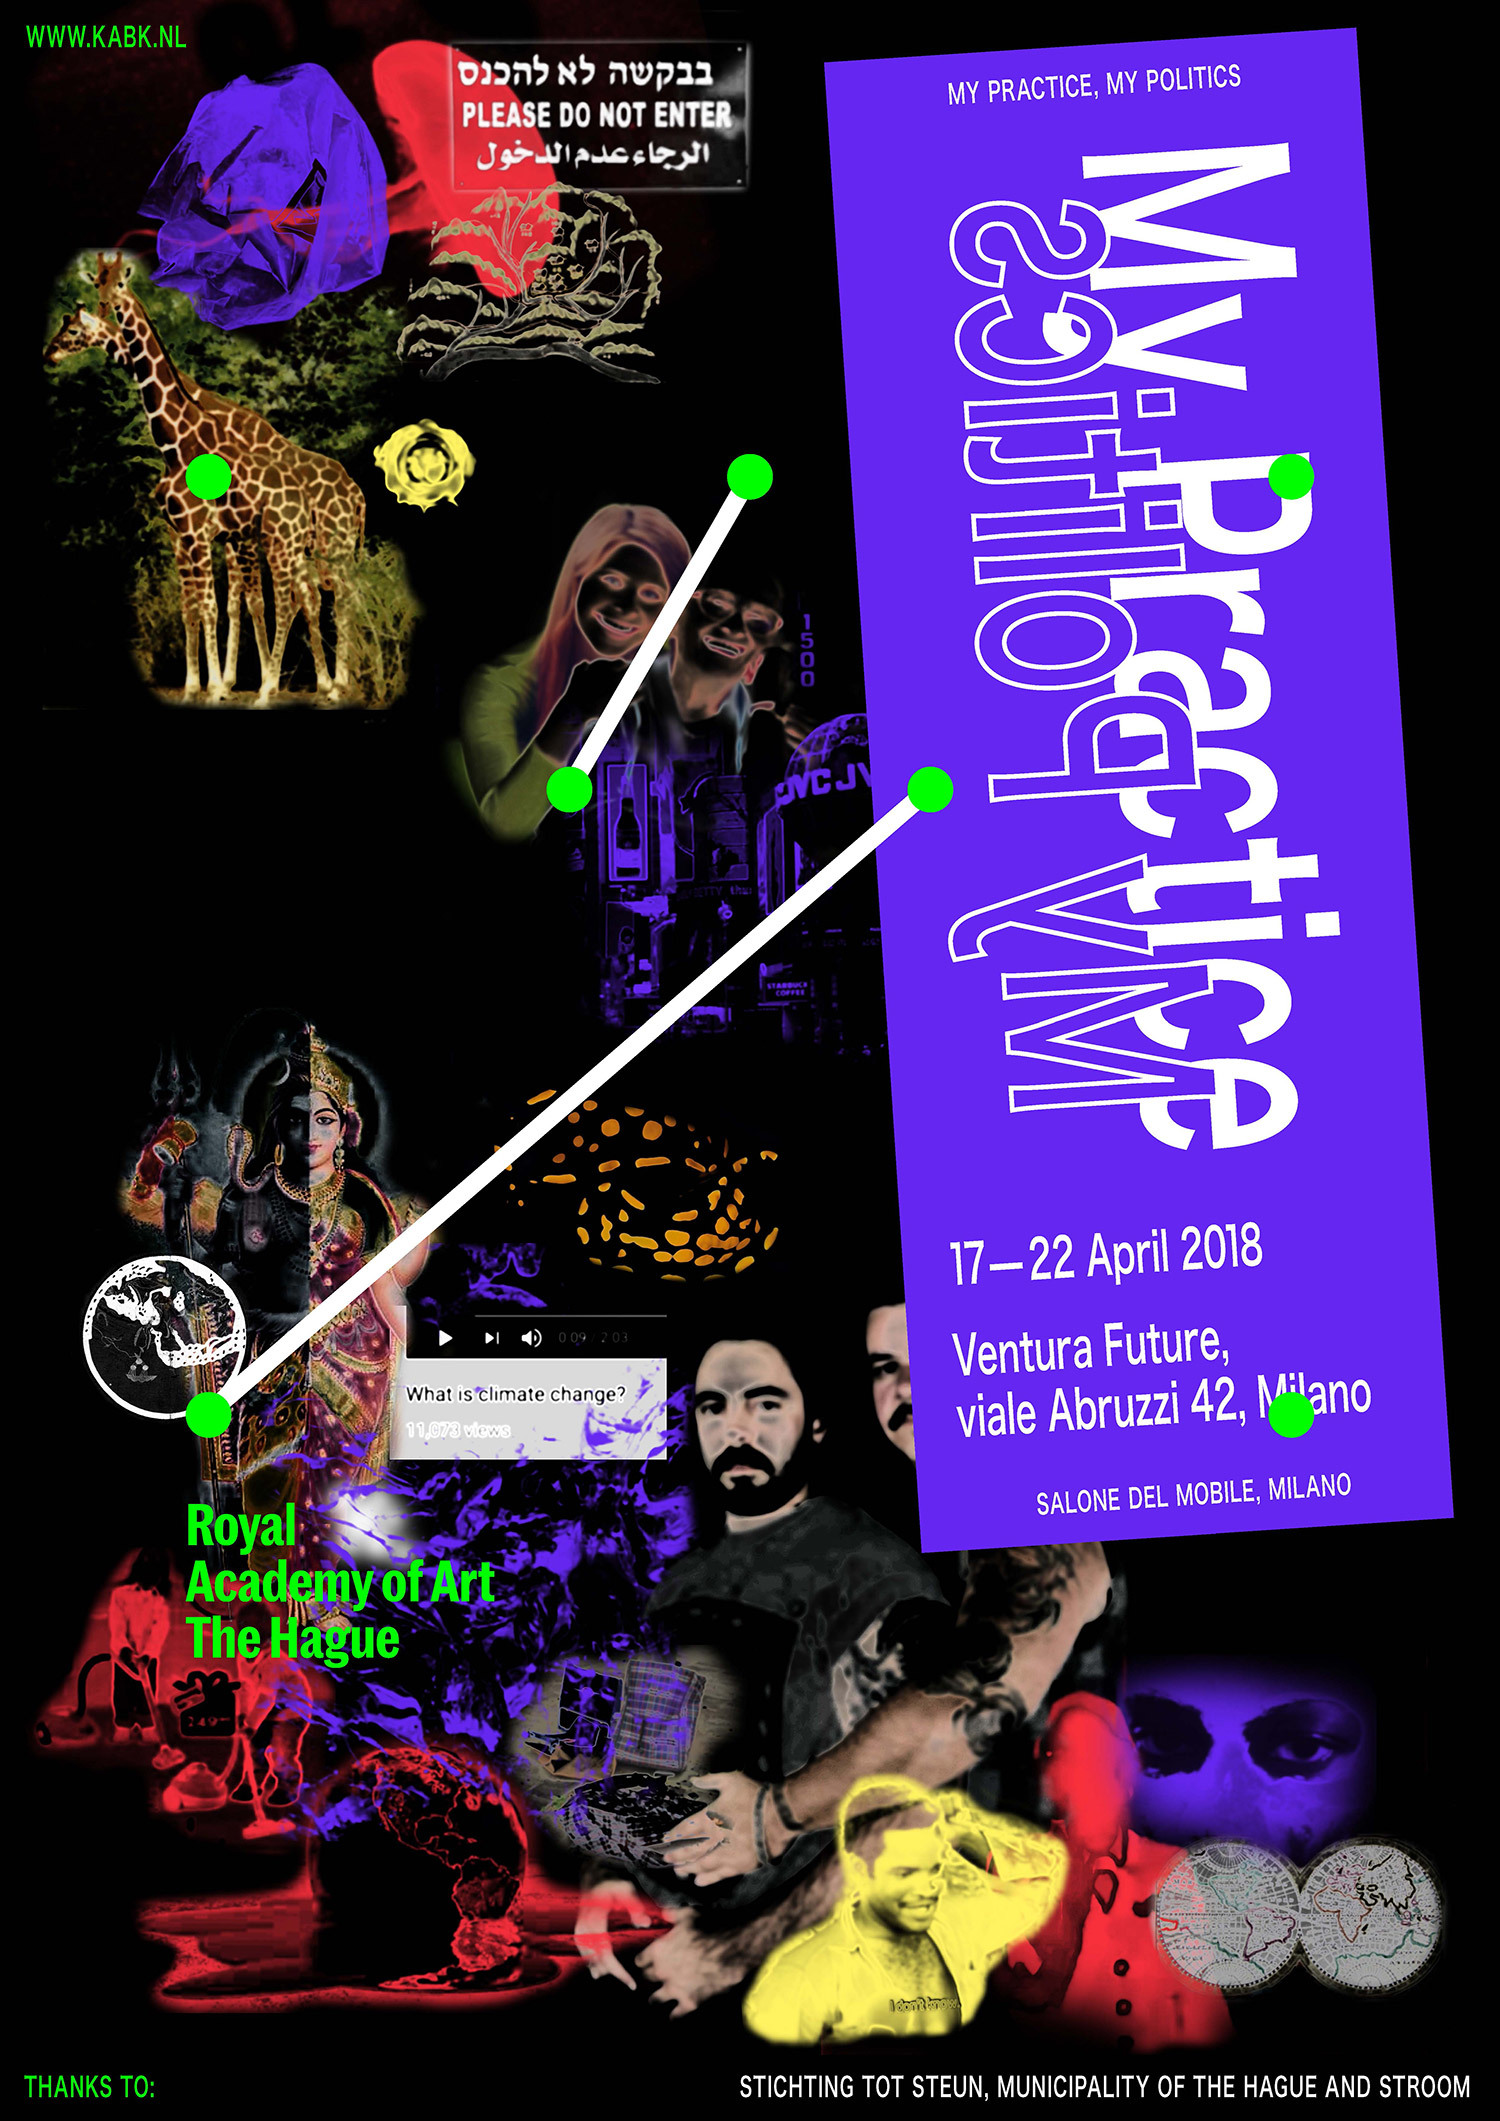 Poster My Practice, My politics - presentation of the Royal Academy of Art, The Hague (KABK) during the Salone del Mobile.Milan 2018